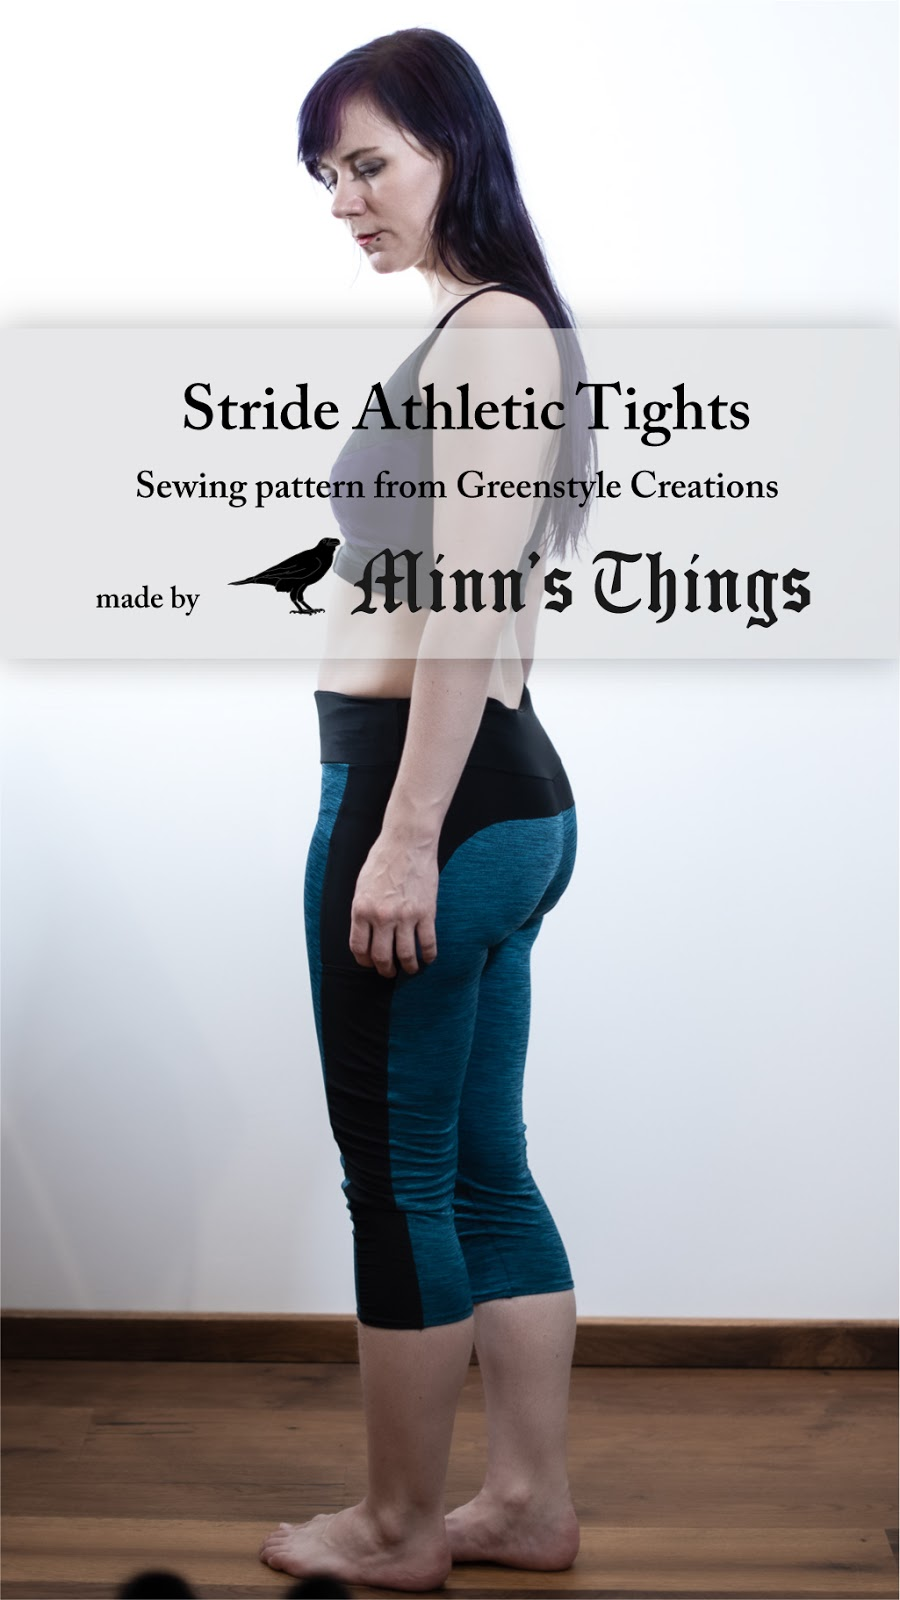 minn's things sewing sports leggings greenstyle creations pattern stride athletic tights pinterest